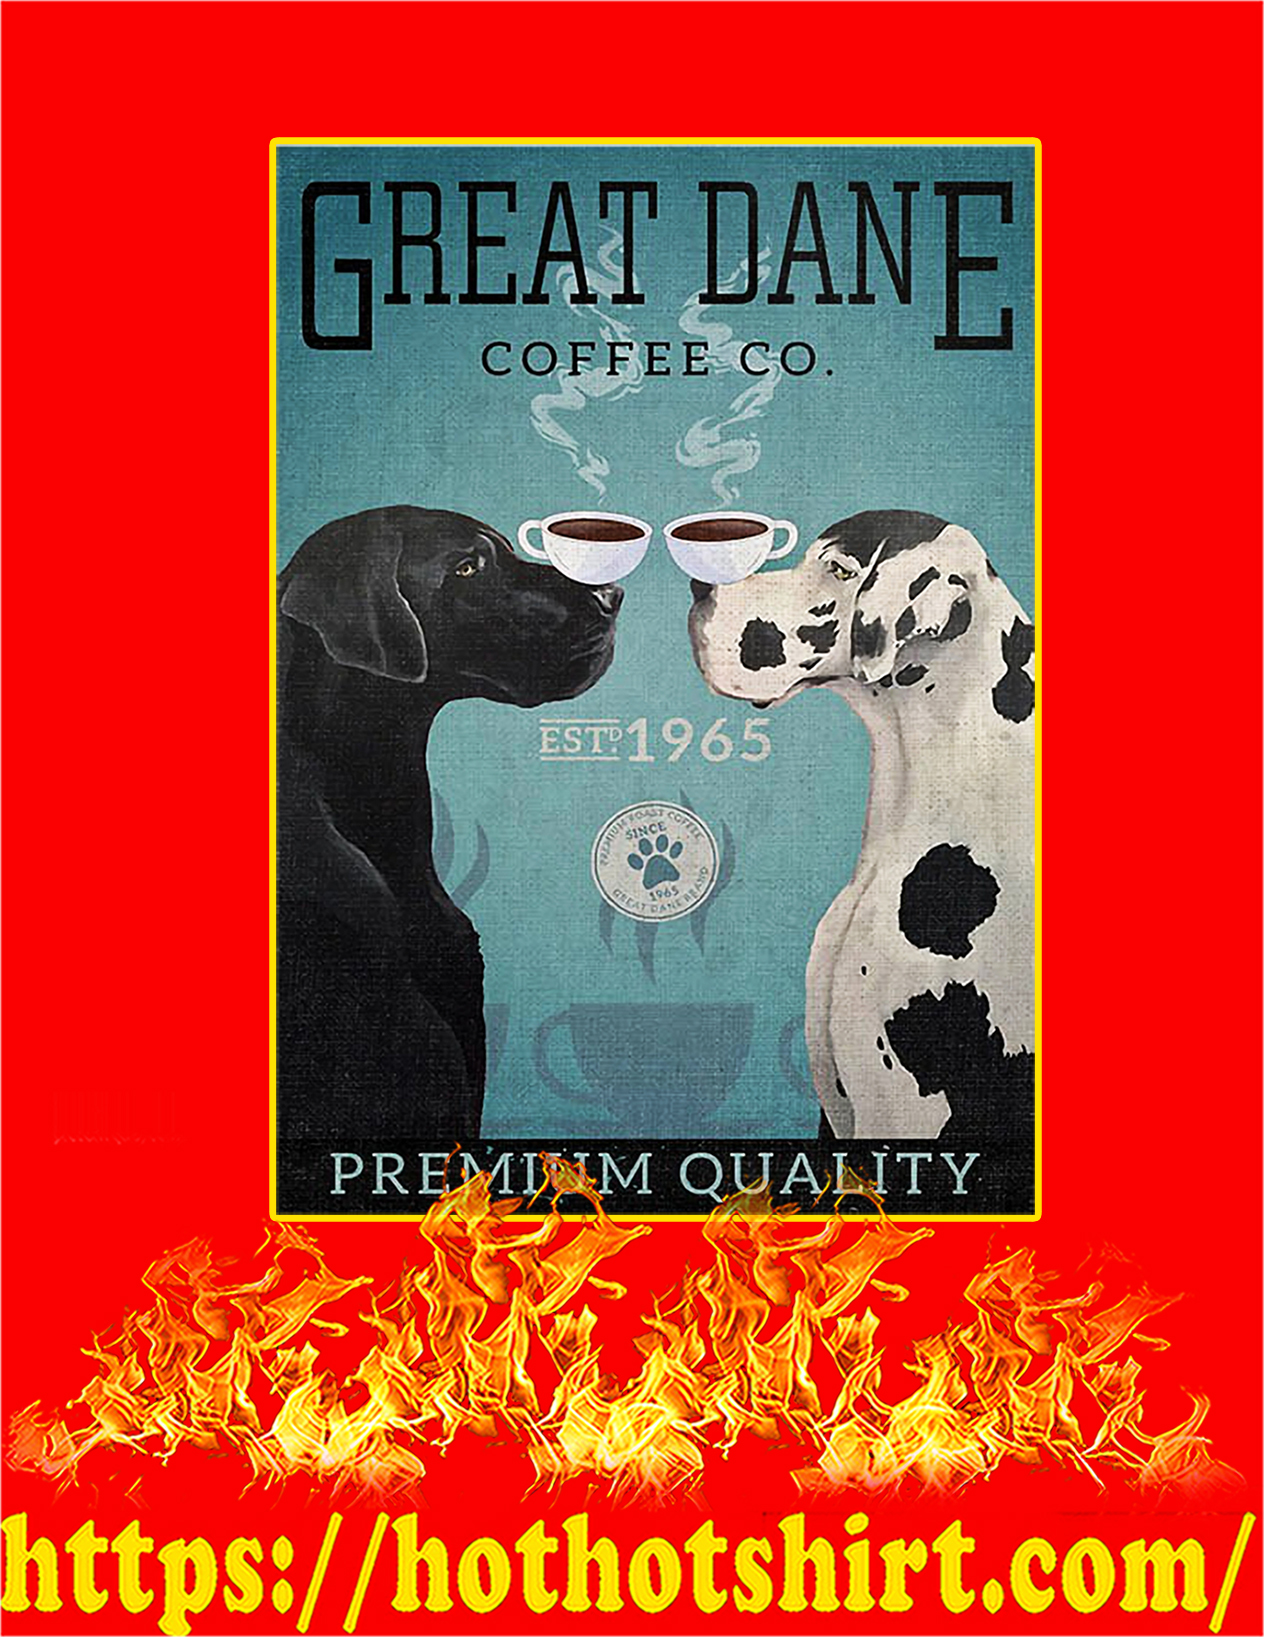 Great dane dog coffee company poster - A2